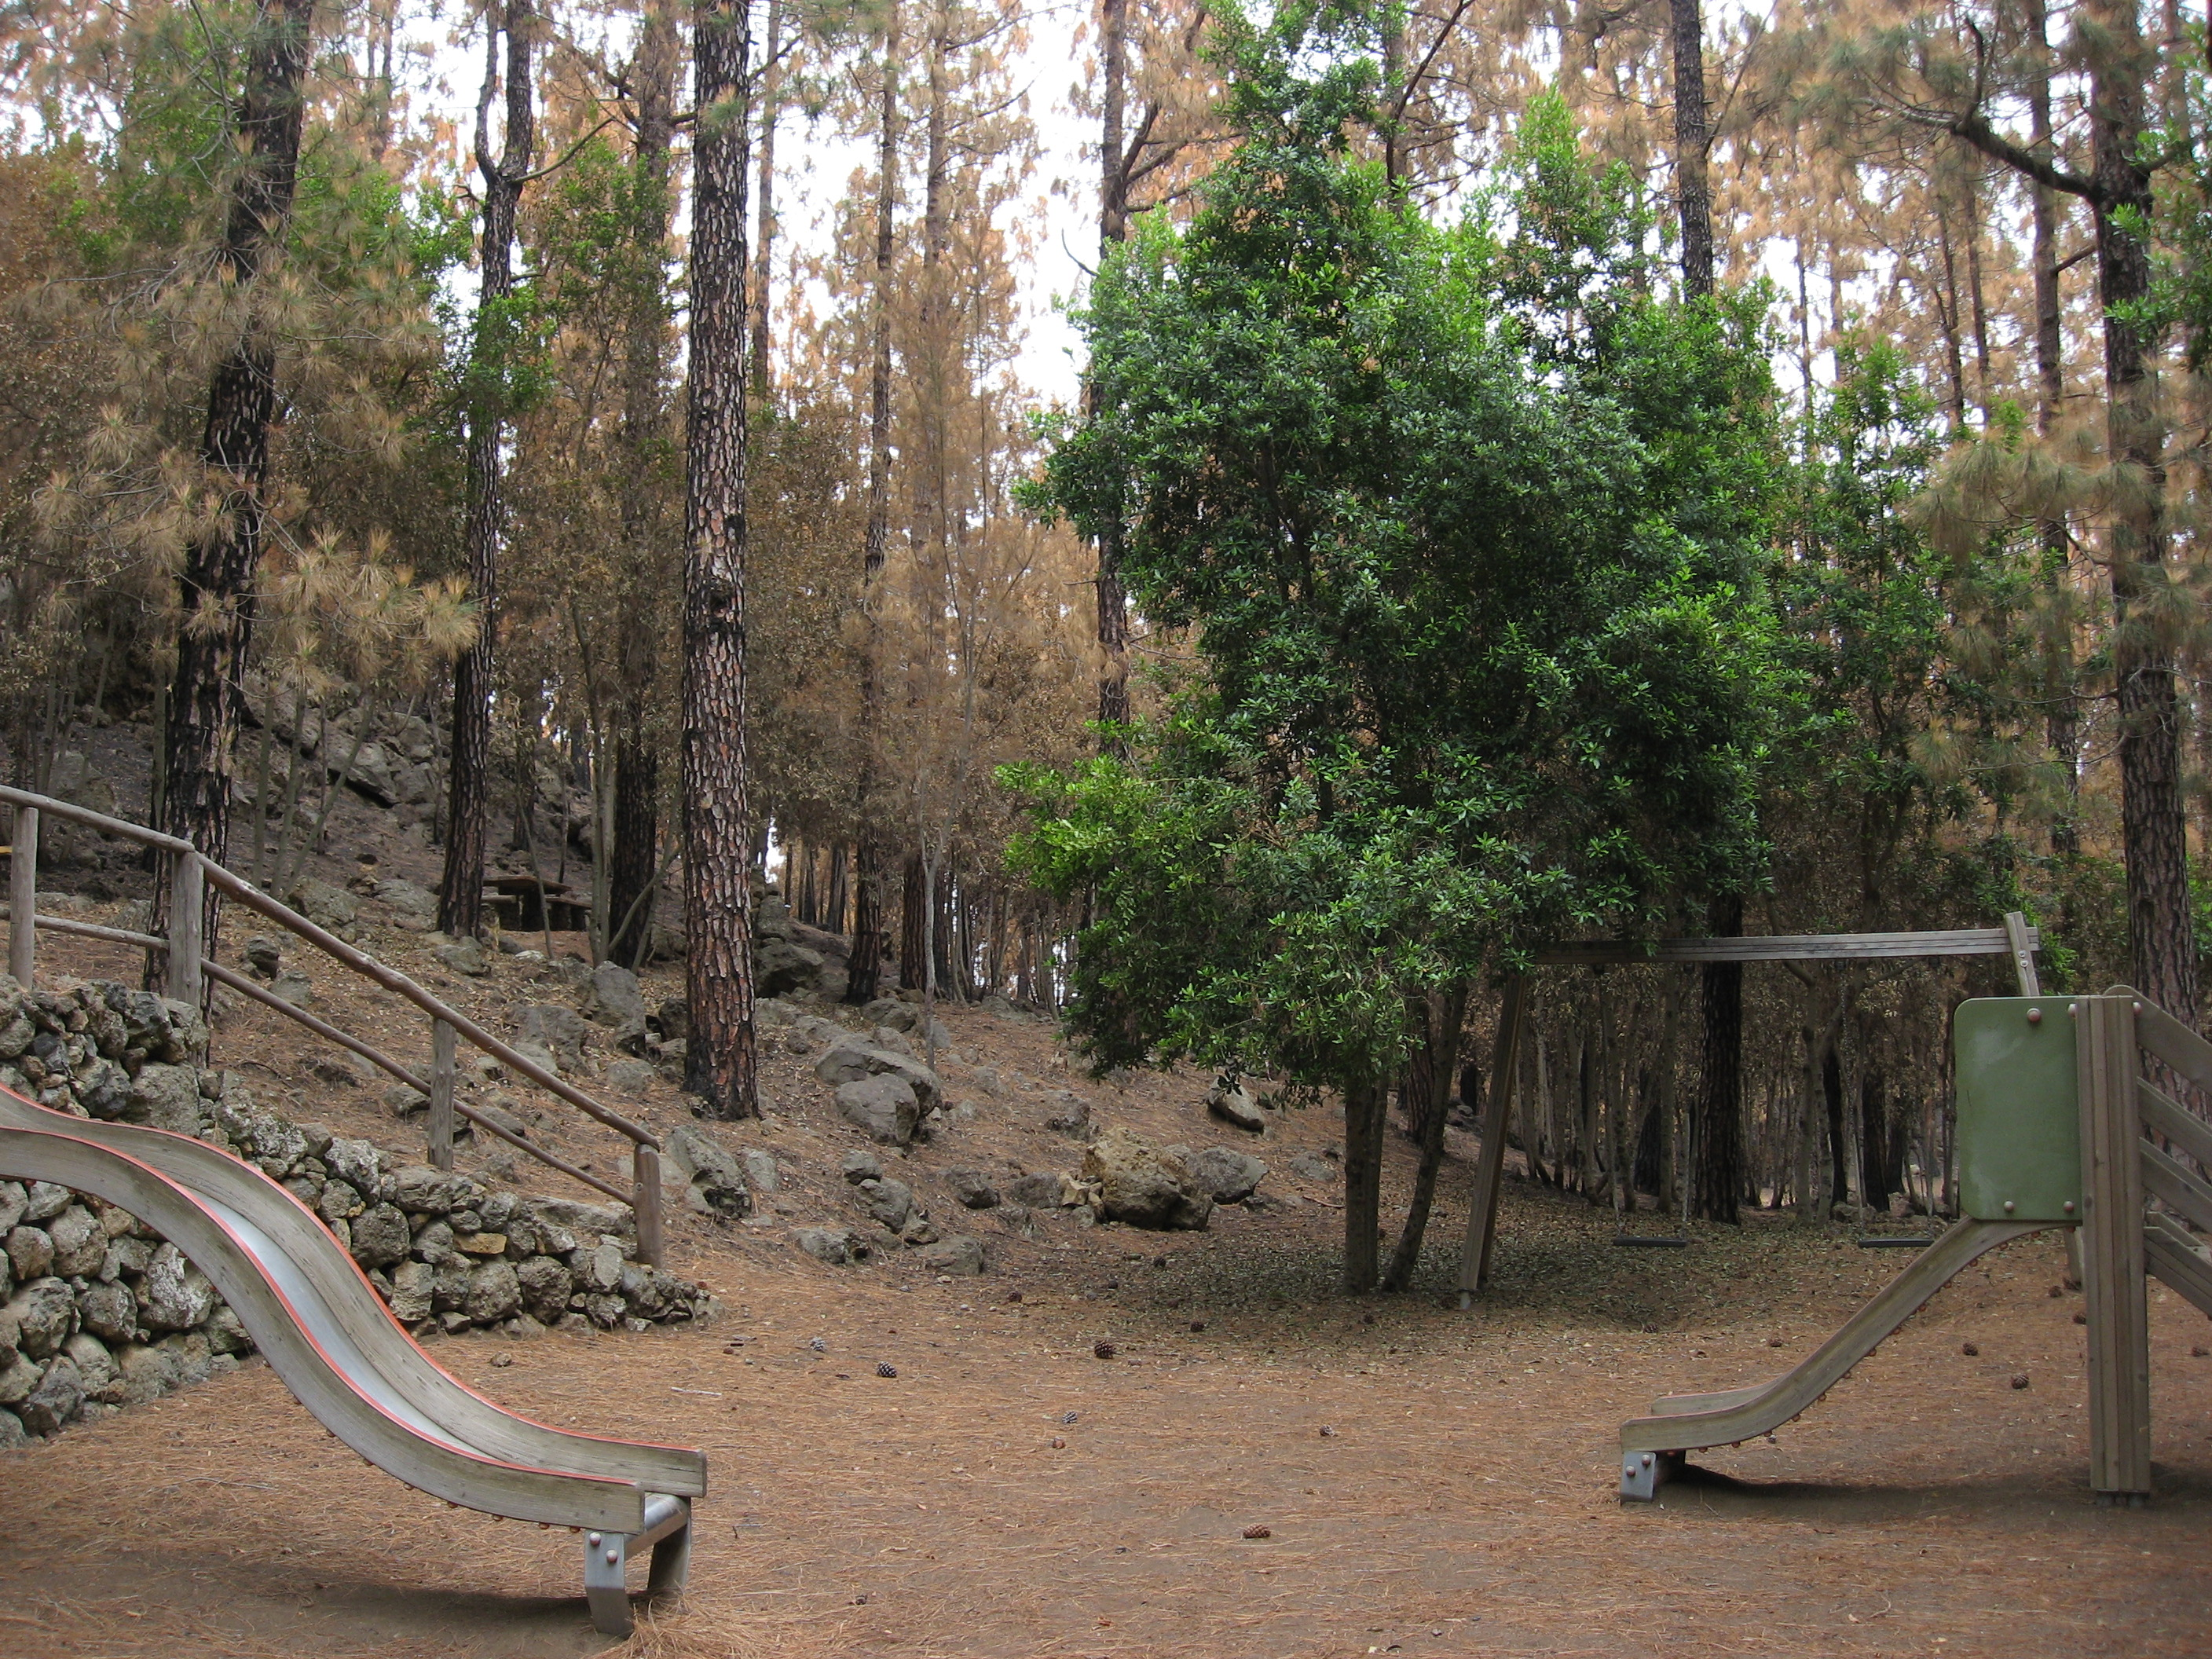 A live faya specimen in one of the zones devastated by the huge forest fire in Tenerife in 2007. Fayas are being planted in recreational areas to act as a green firewall.